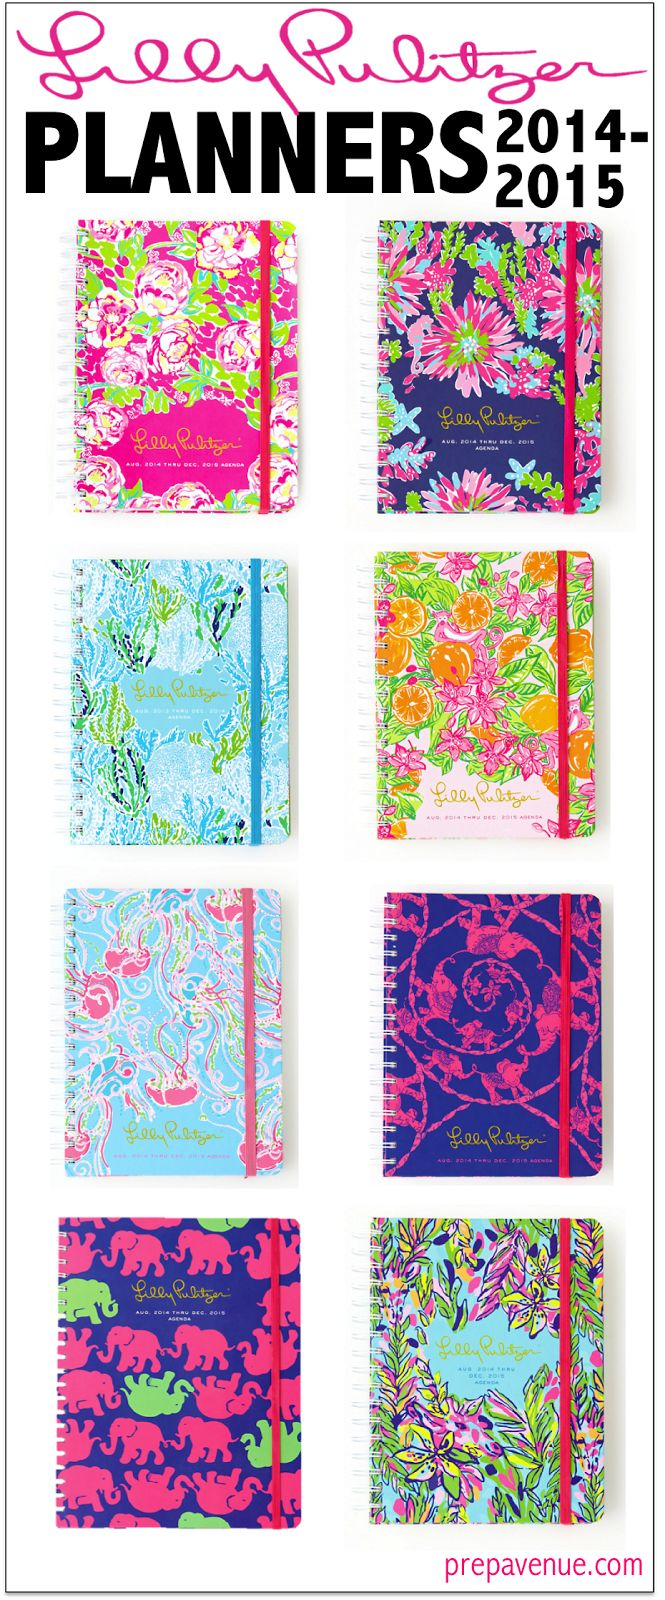 Lilly Pulitzer Planners! These are adorable! The patterns are fun and timeless. They are so bright, how can you forget to write in them? Pretty things keep me motivated